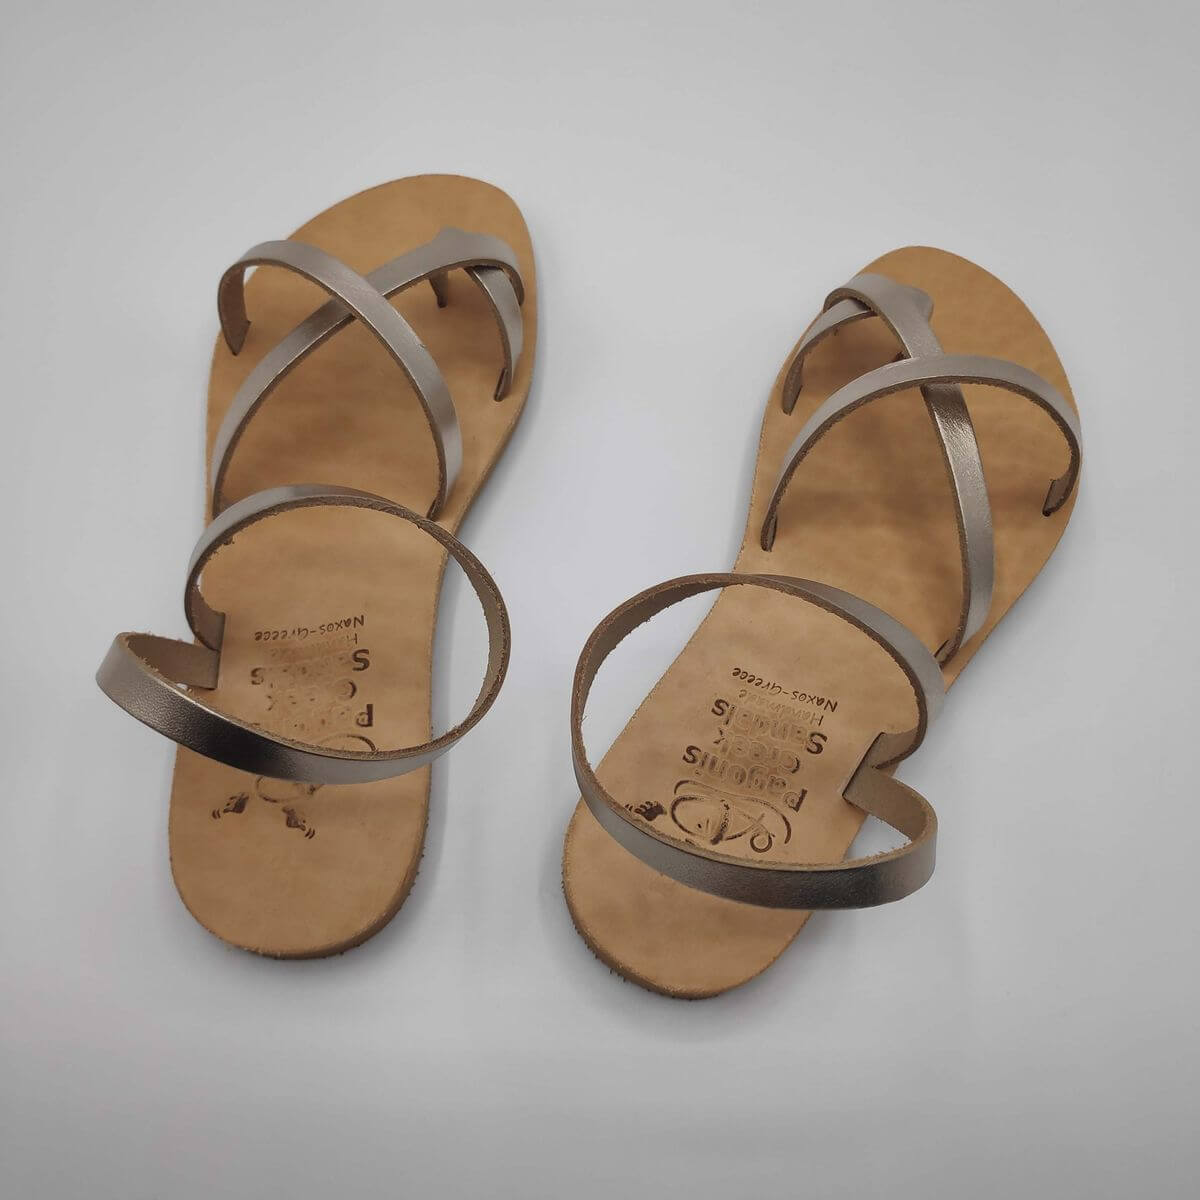 Gold Leather Strappy Sandals with Toe Straps | Antiparos | Pagonis Greek Sandals